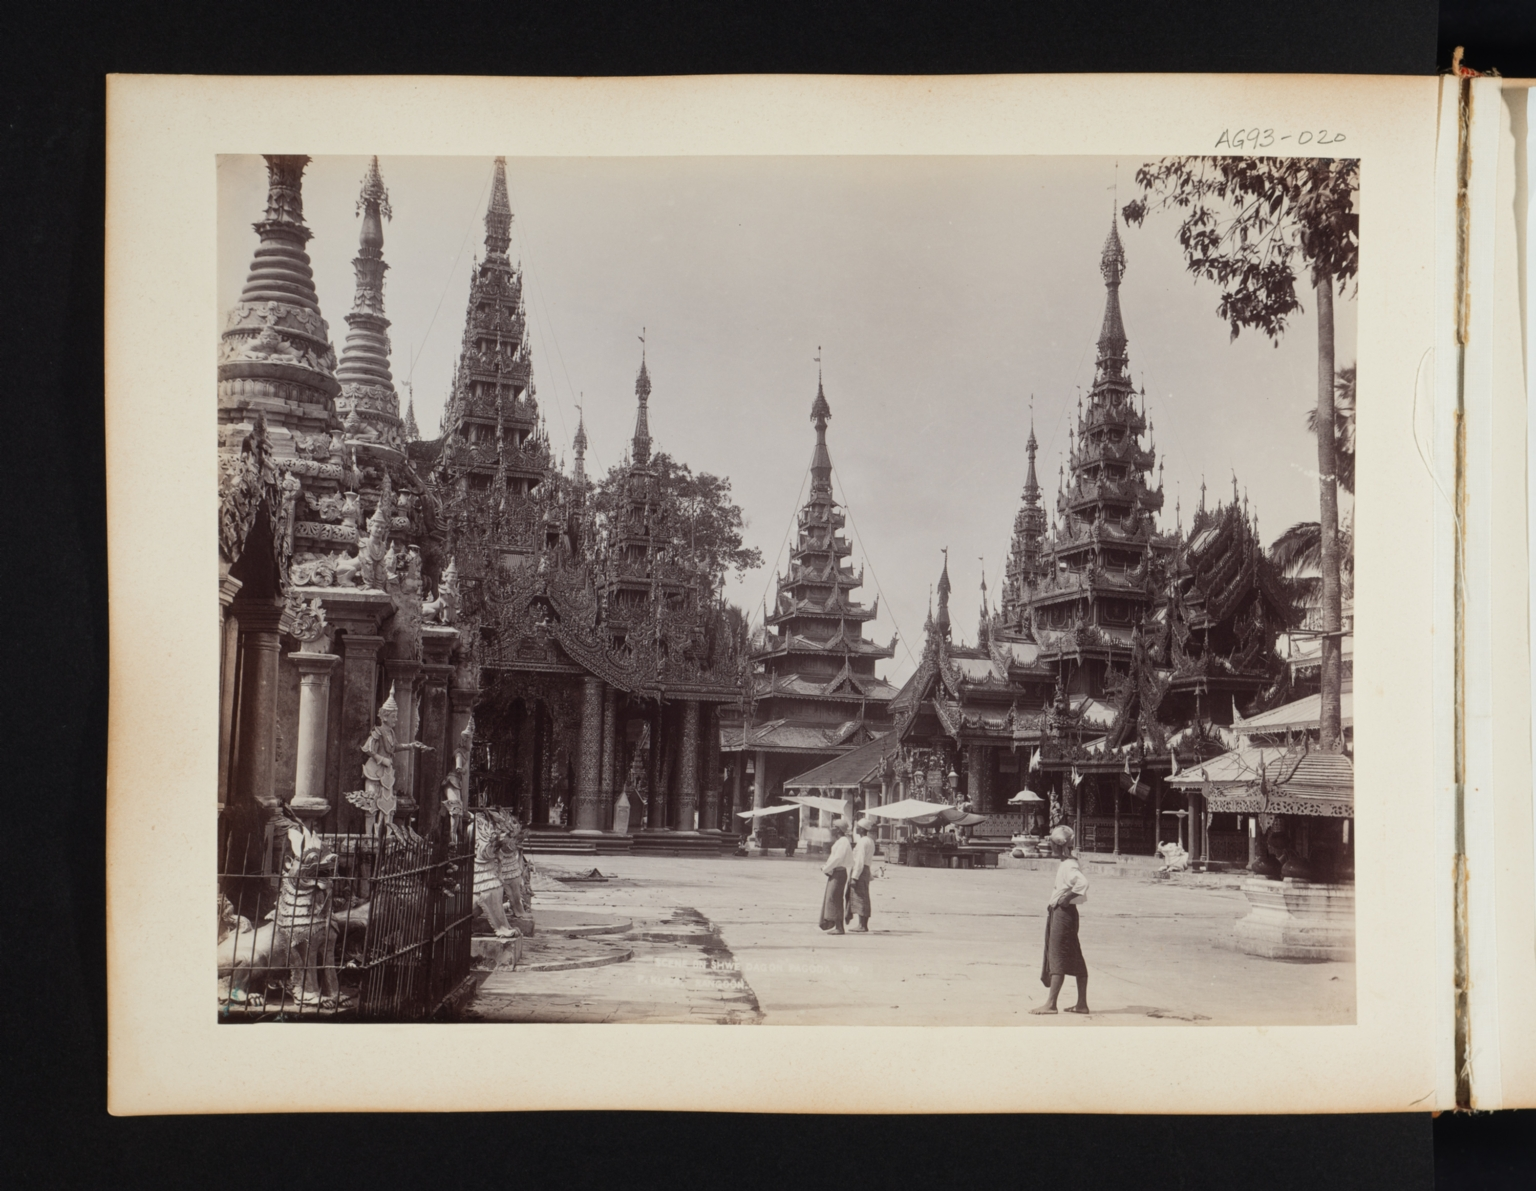 Scene at the Shwe Dagoda Pagoda.